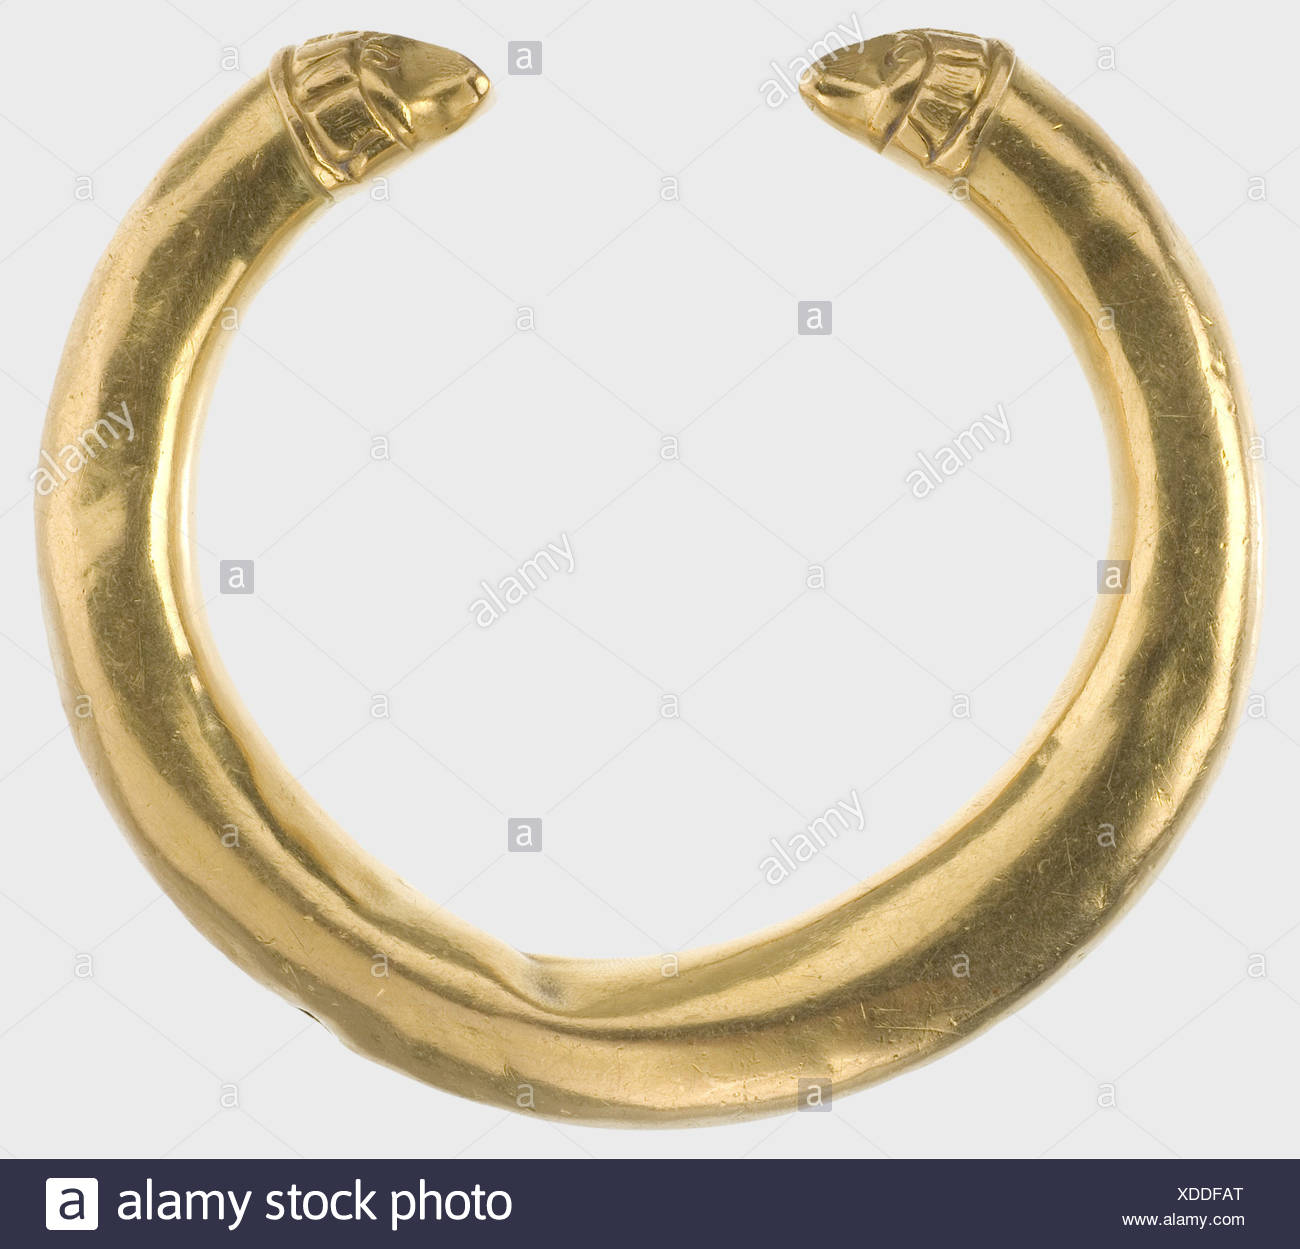 A golden Hellenistic bracelet, 3rd/2nd century B.C. Hollow, double tapered bracelet with stylized animal head finials. Somewhat dented and with a slight kink in the middle. Diameter 8.5 cm. Weight 78.5 g. historic, historical, ancient world, jewellery, jewelry, object, objects, stills, clipping, clippings, cut out, cut-out, cut-outs, Additional-Rights-Clearences-NA - Stock Image